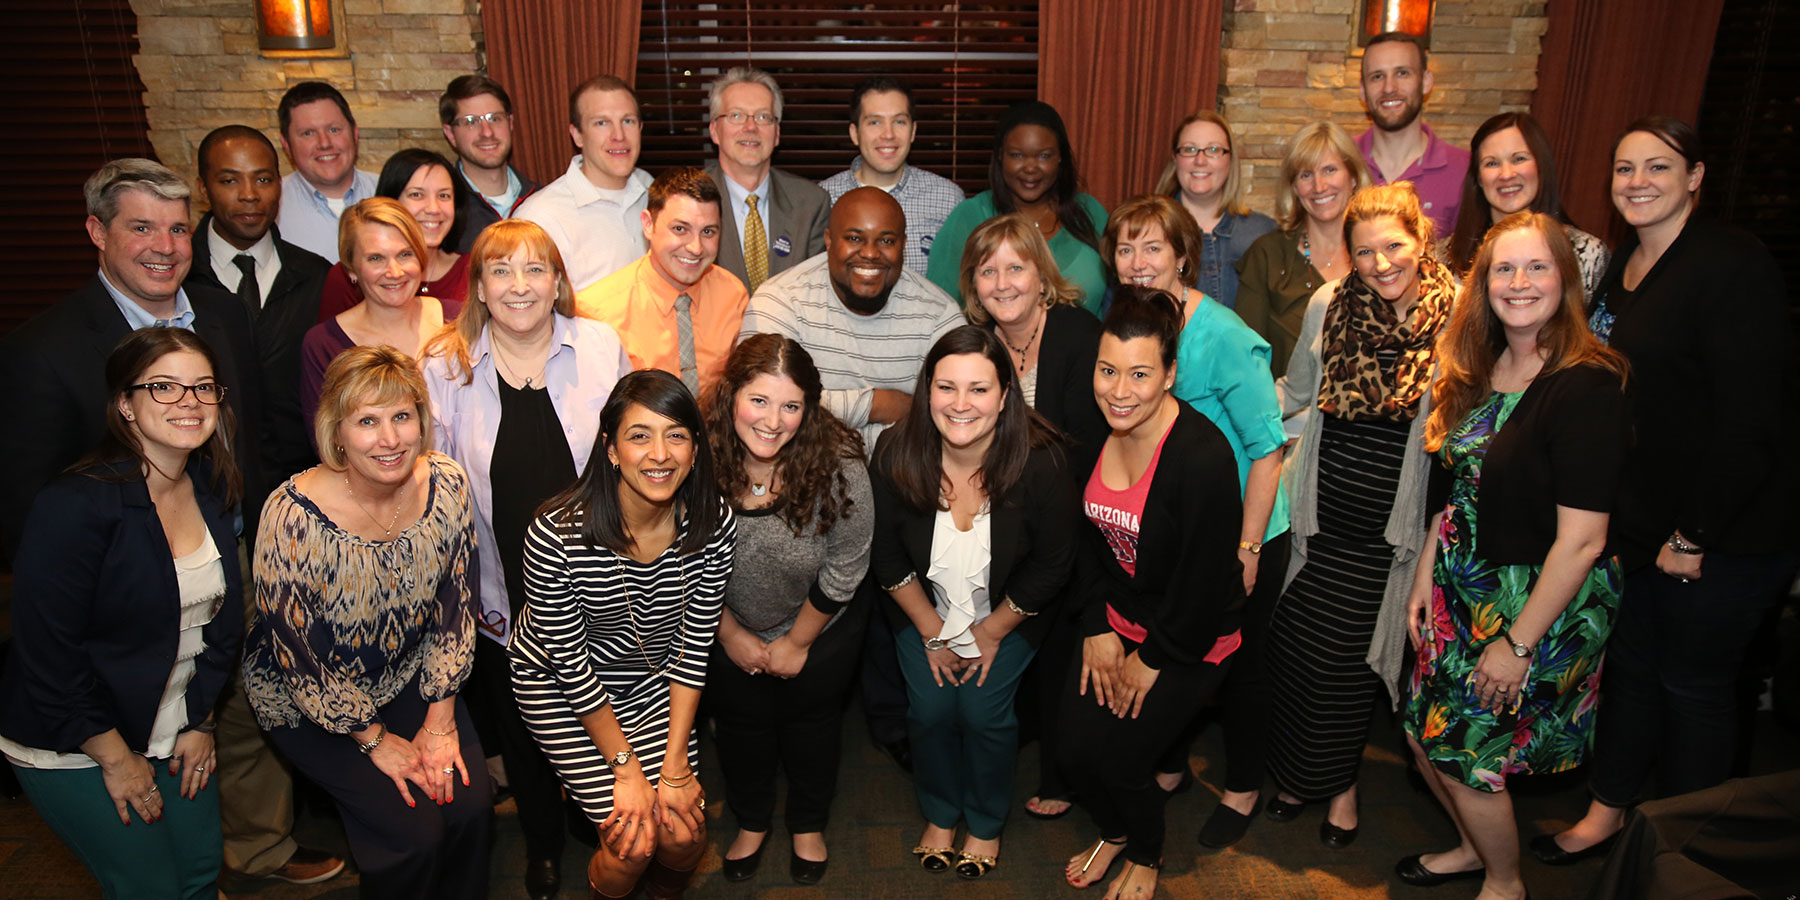 Conference Committee Co-Chairs 2015